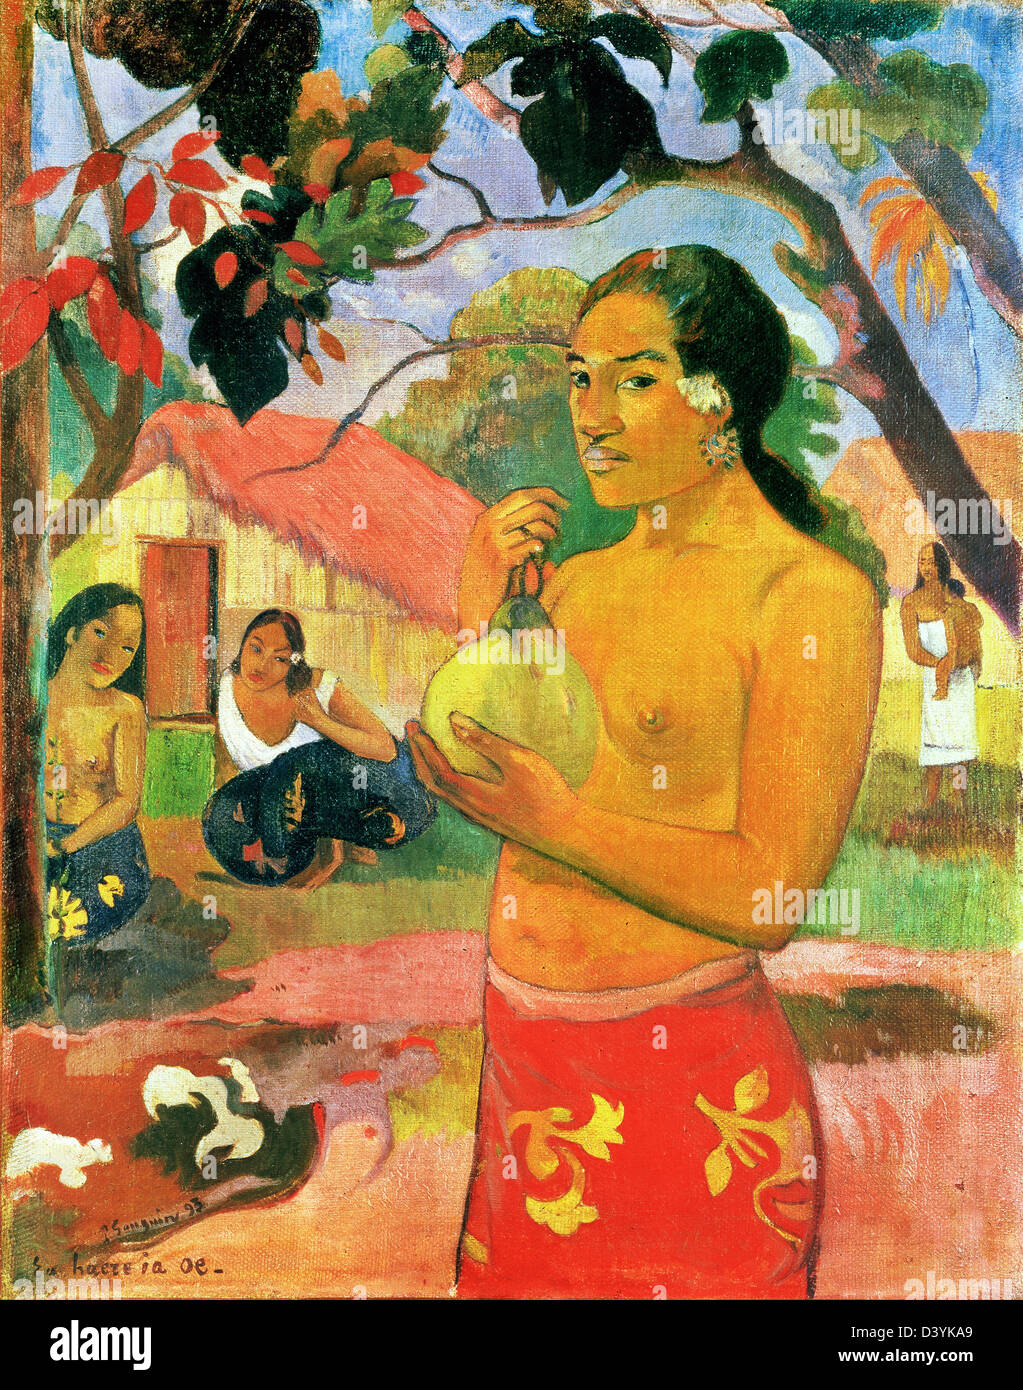 Paul Gauguin, Woman Holding a Fruit 1893 Oil on canvas. Hermitage, St. Petersburg, Russia - Stock Image